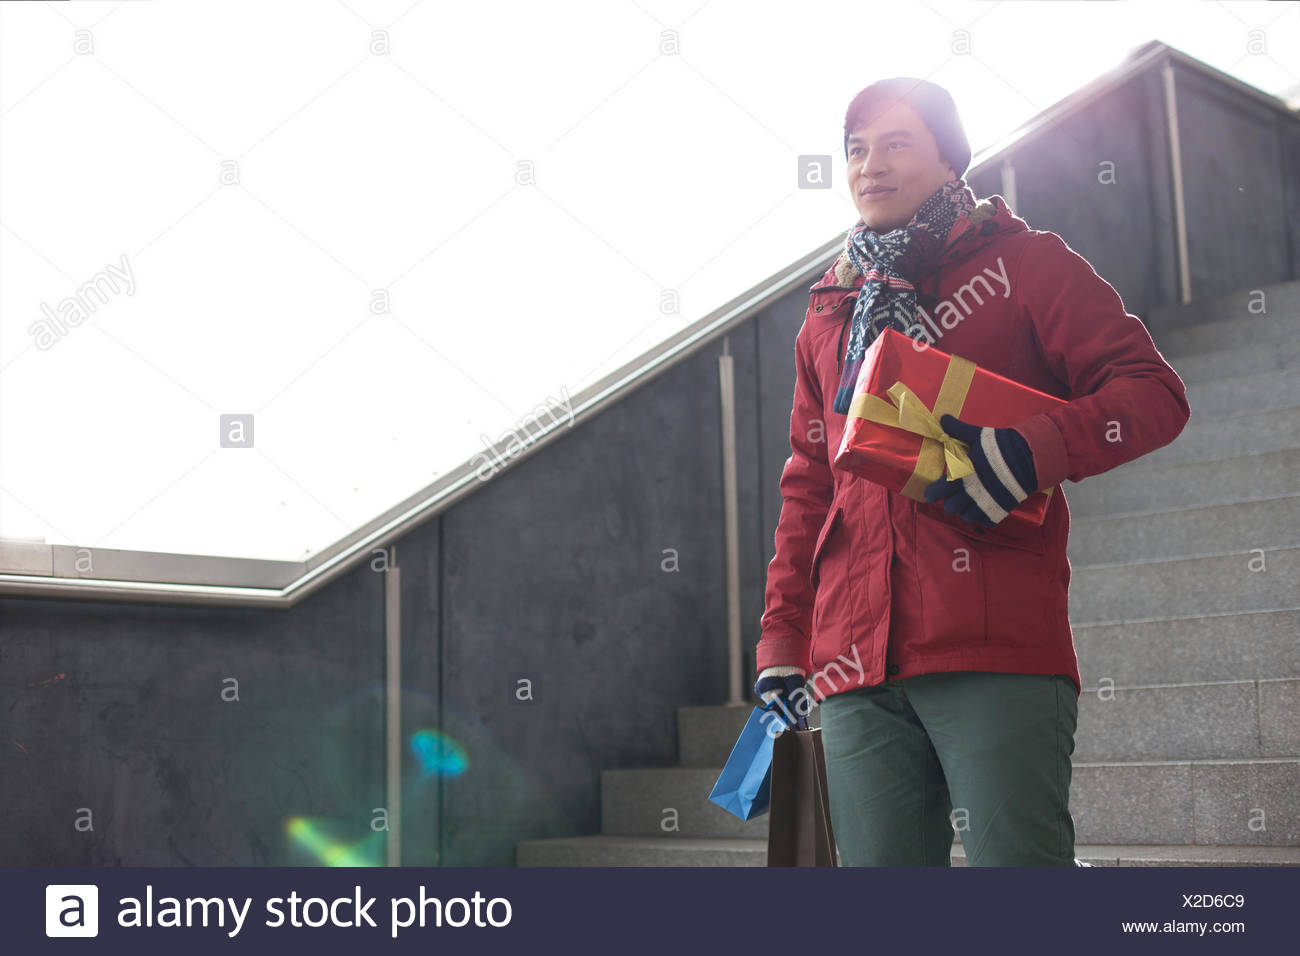 Smiling man holding gifts while moving down steps Stock Photo